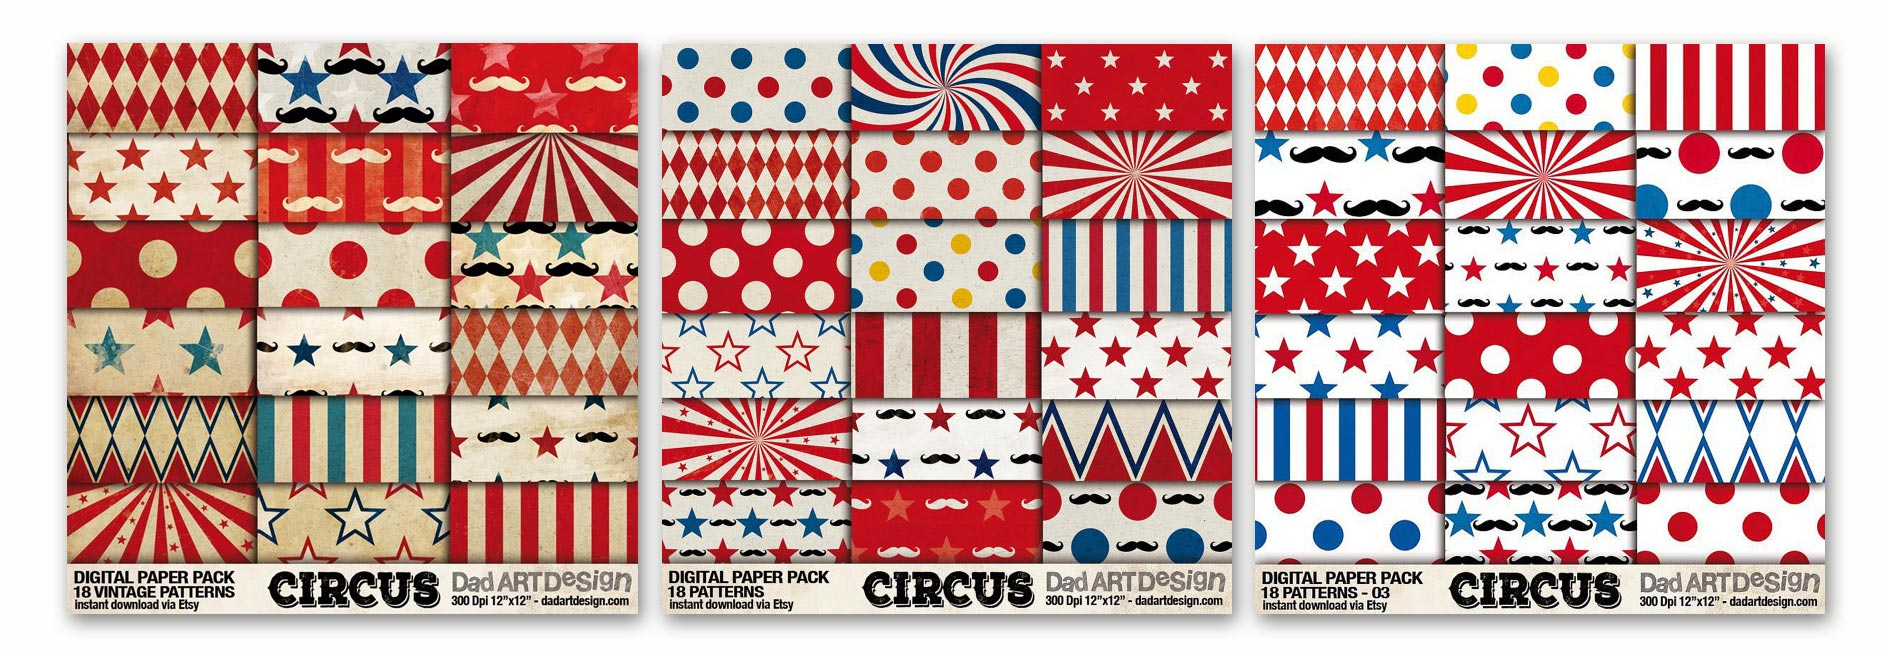 3 Circus Patterns digitalpaper package in bundle